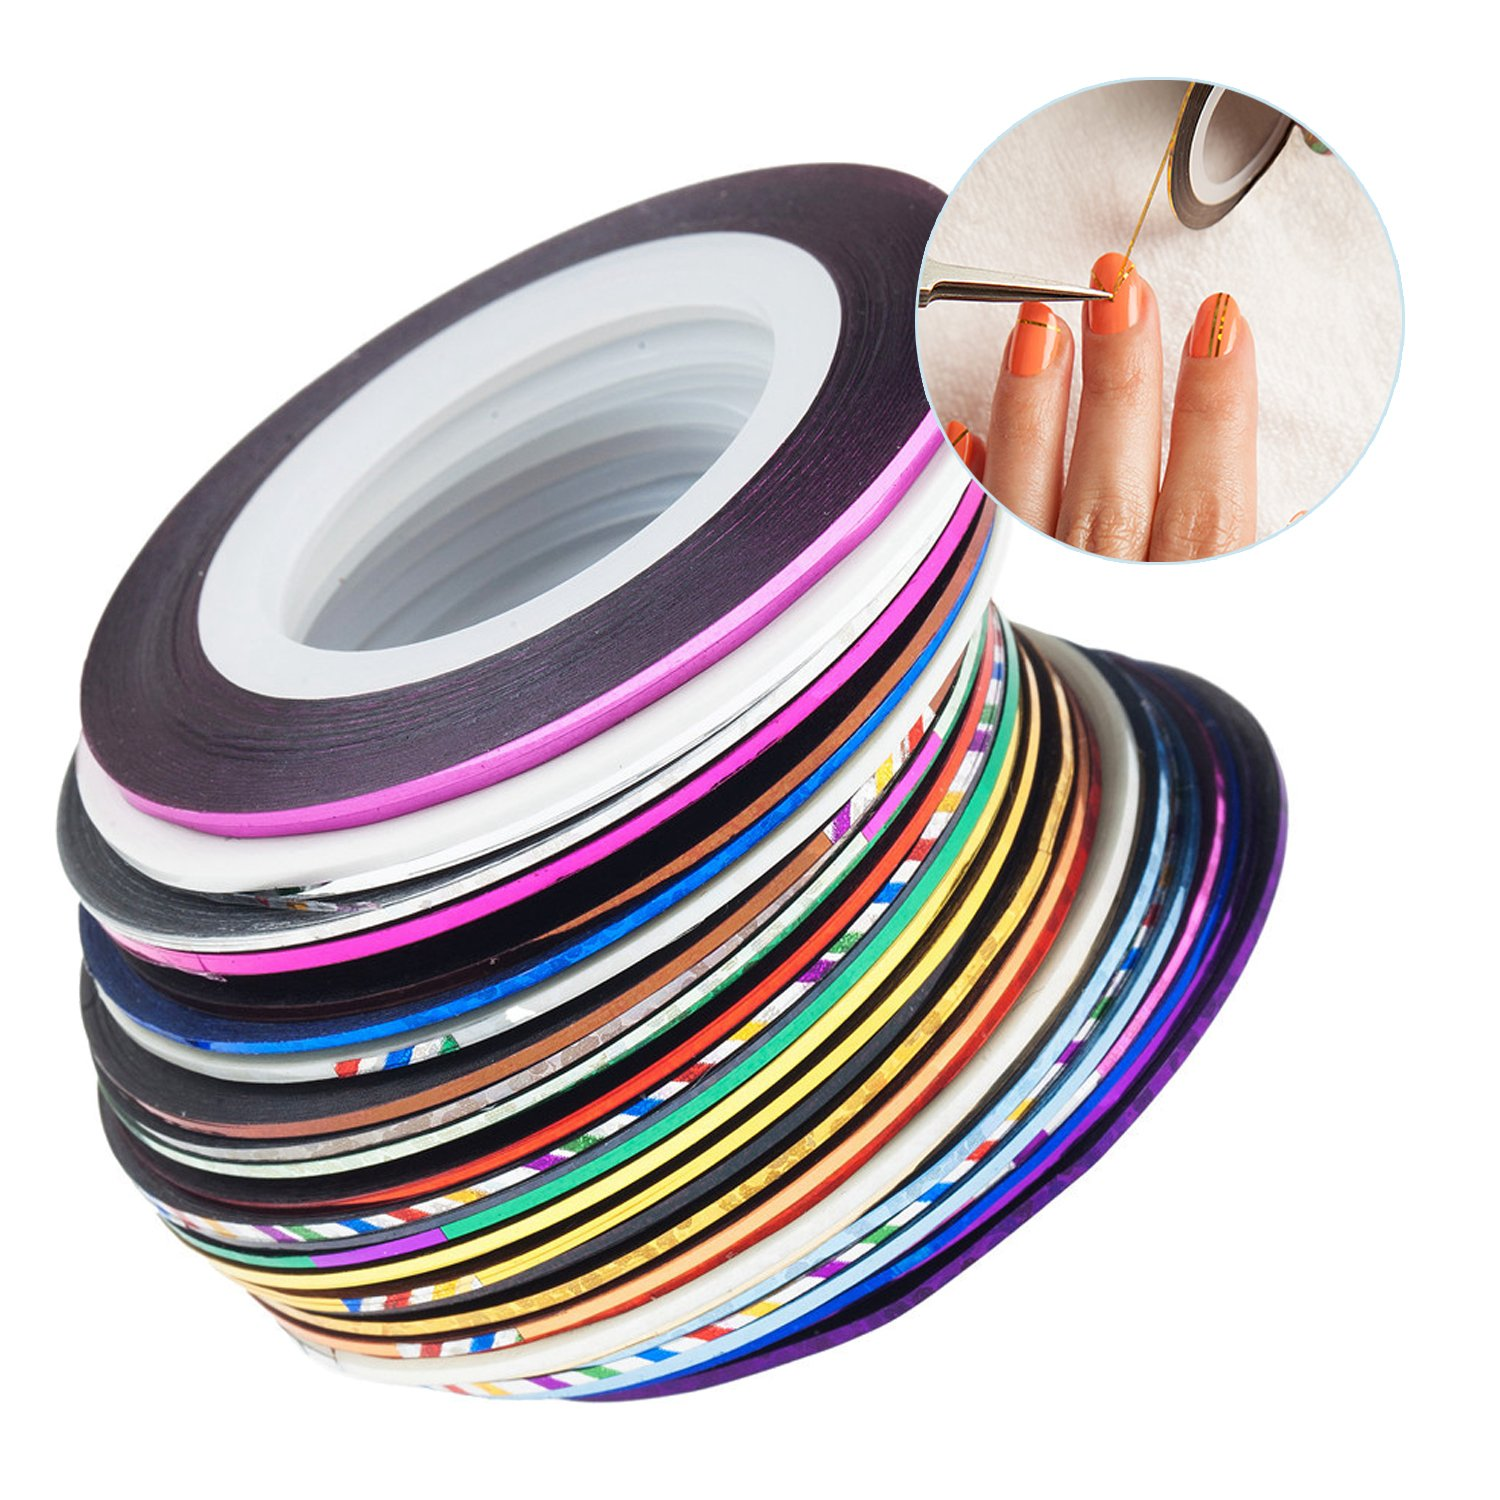 Professional High Quality Nail Art Tools Accessories Set of 32 Colourful Nailart Stripes / Striping Tapes By VAGA®